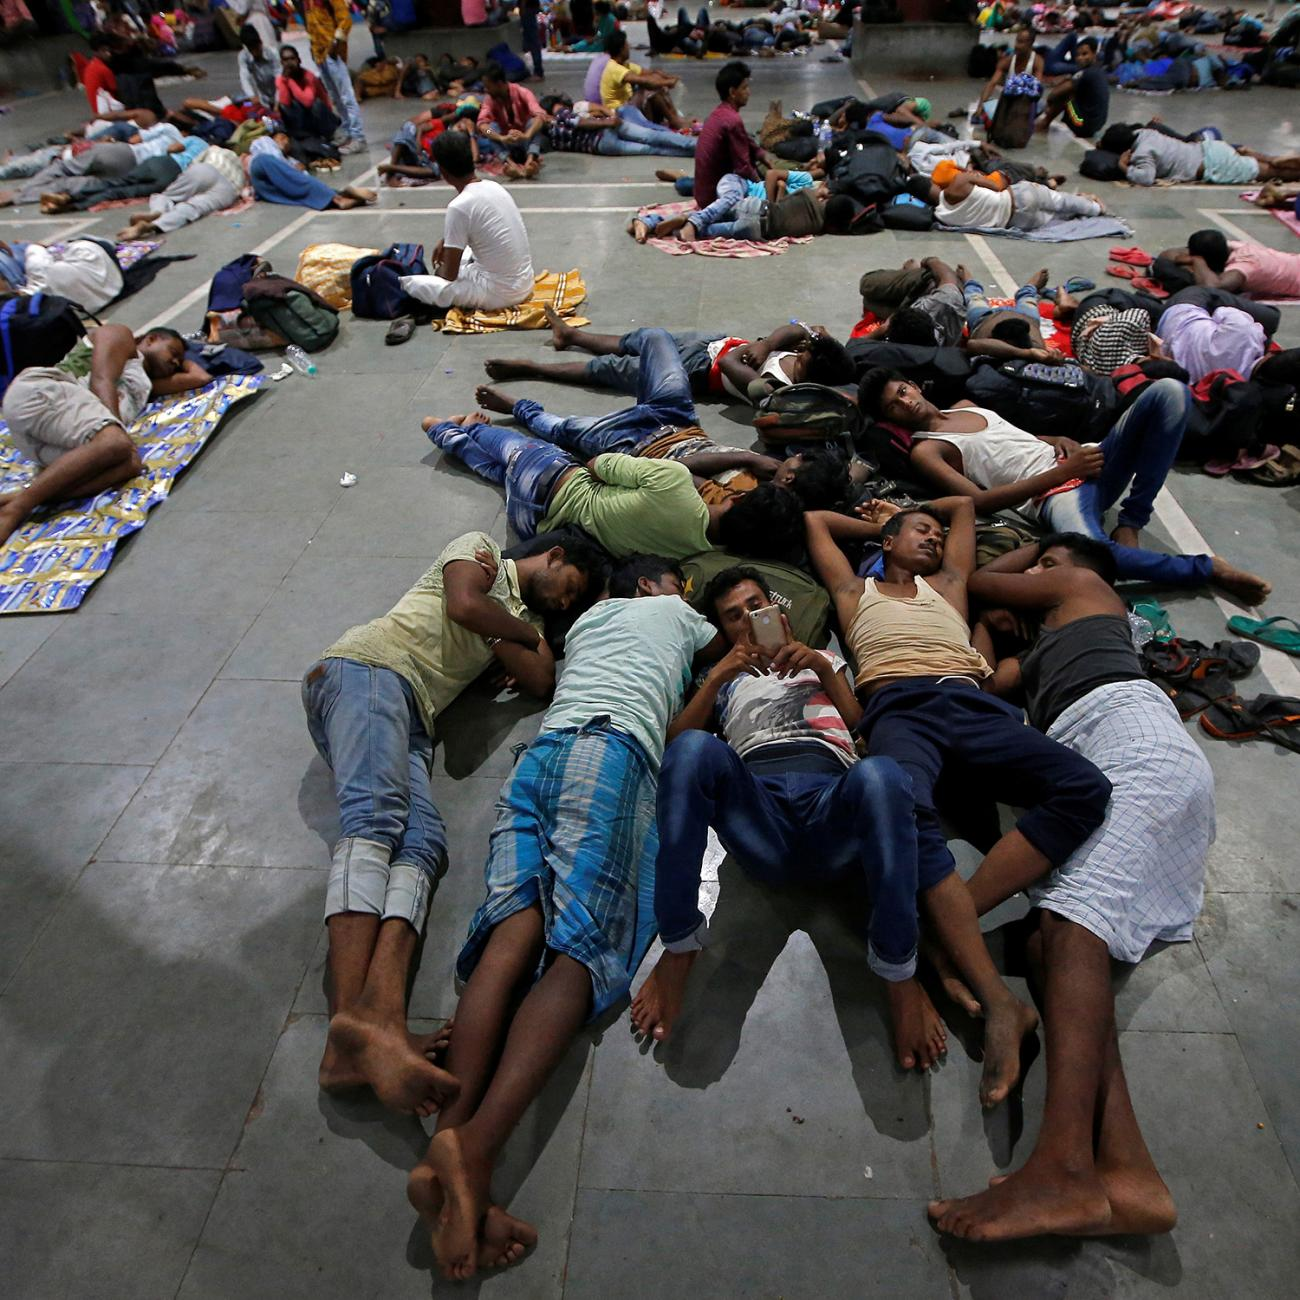 The photo shows a large number of people stretched out on concrete resting.